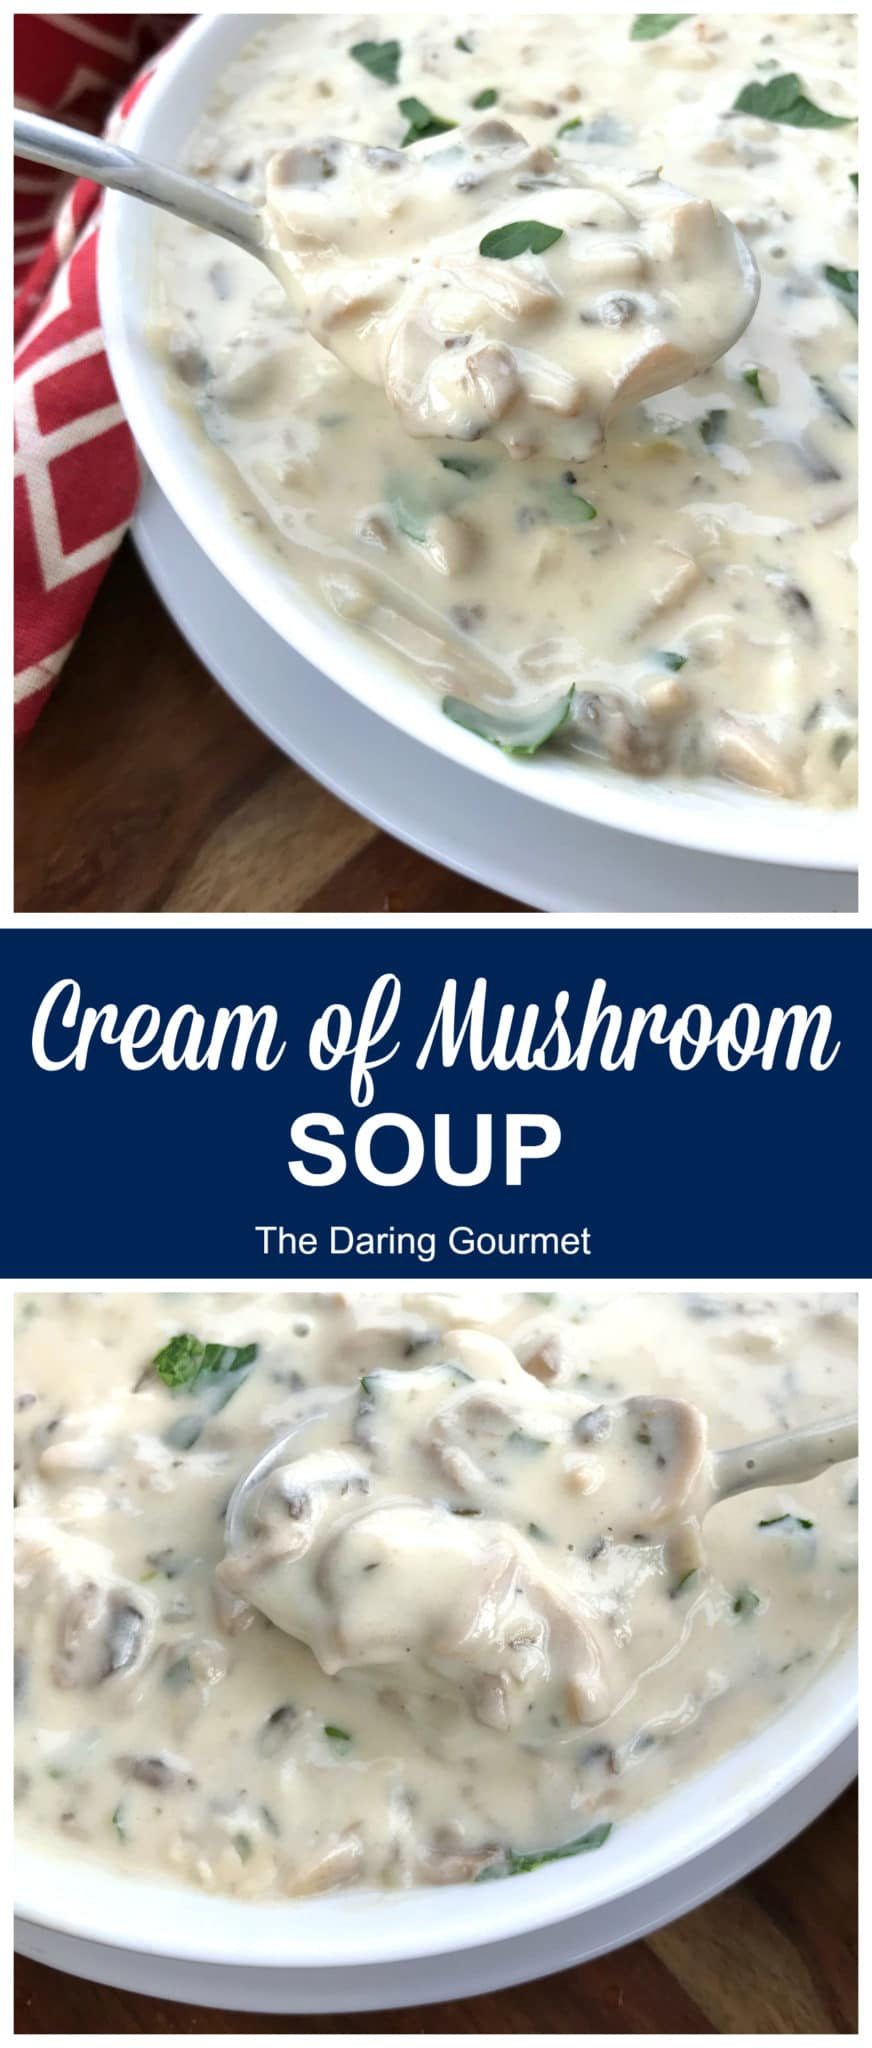 cream of mushroom soup recipe best homemade from scratch